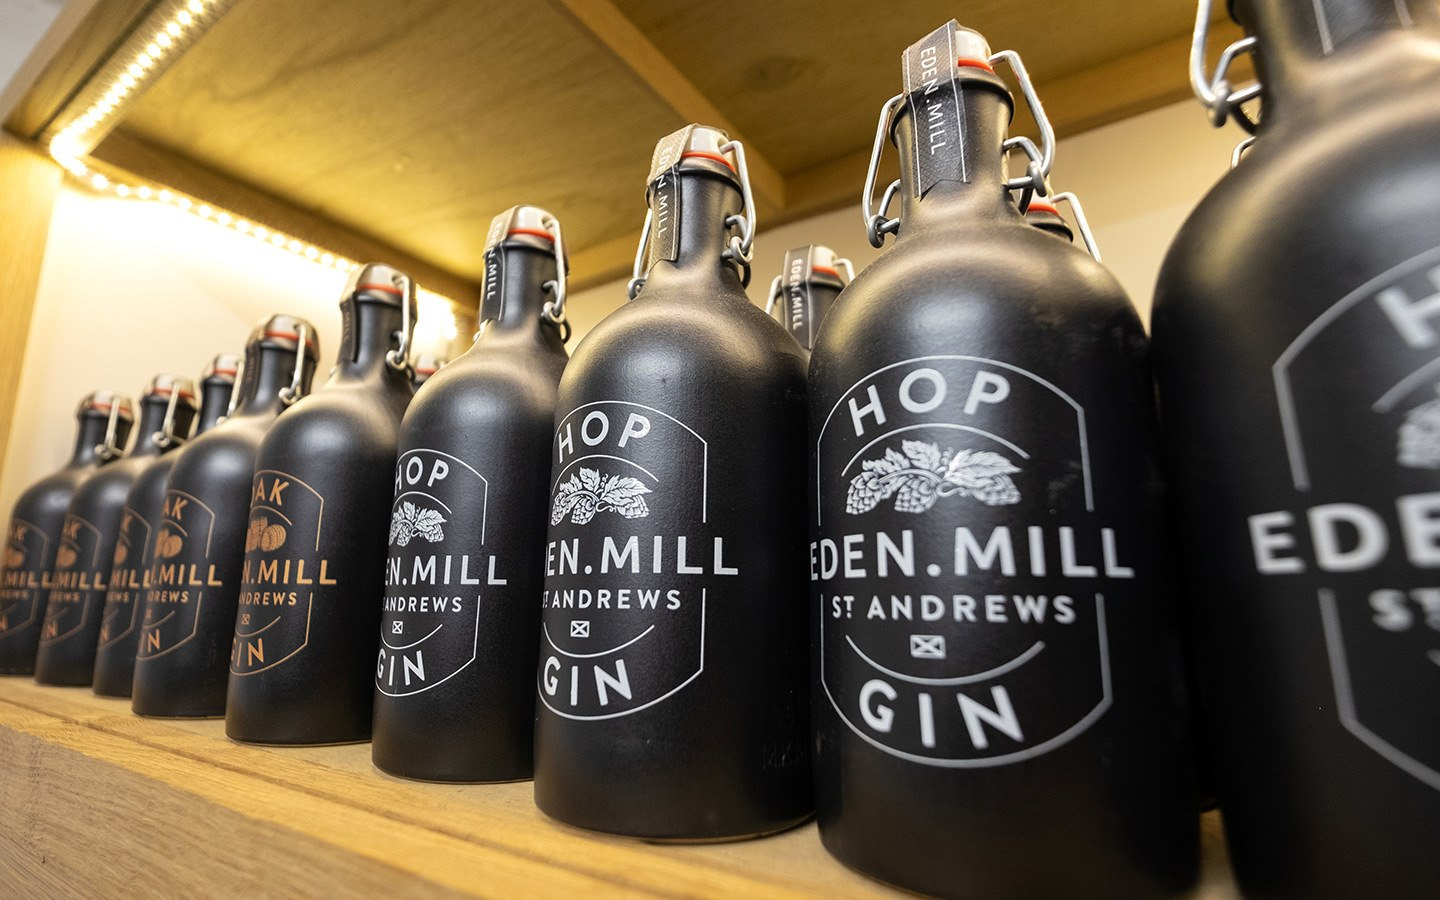 The Eden Mill gin distillery tour in St Andrews